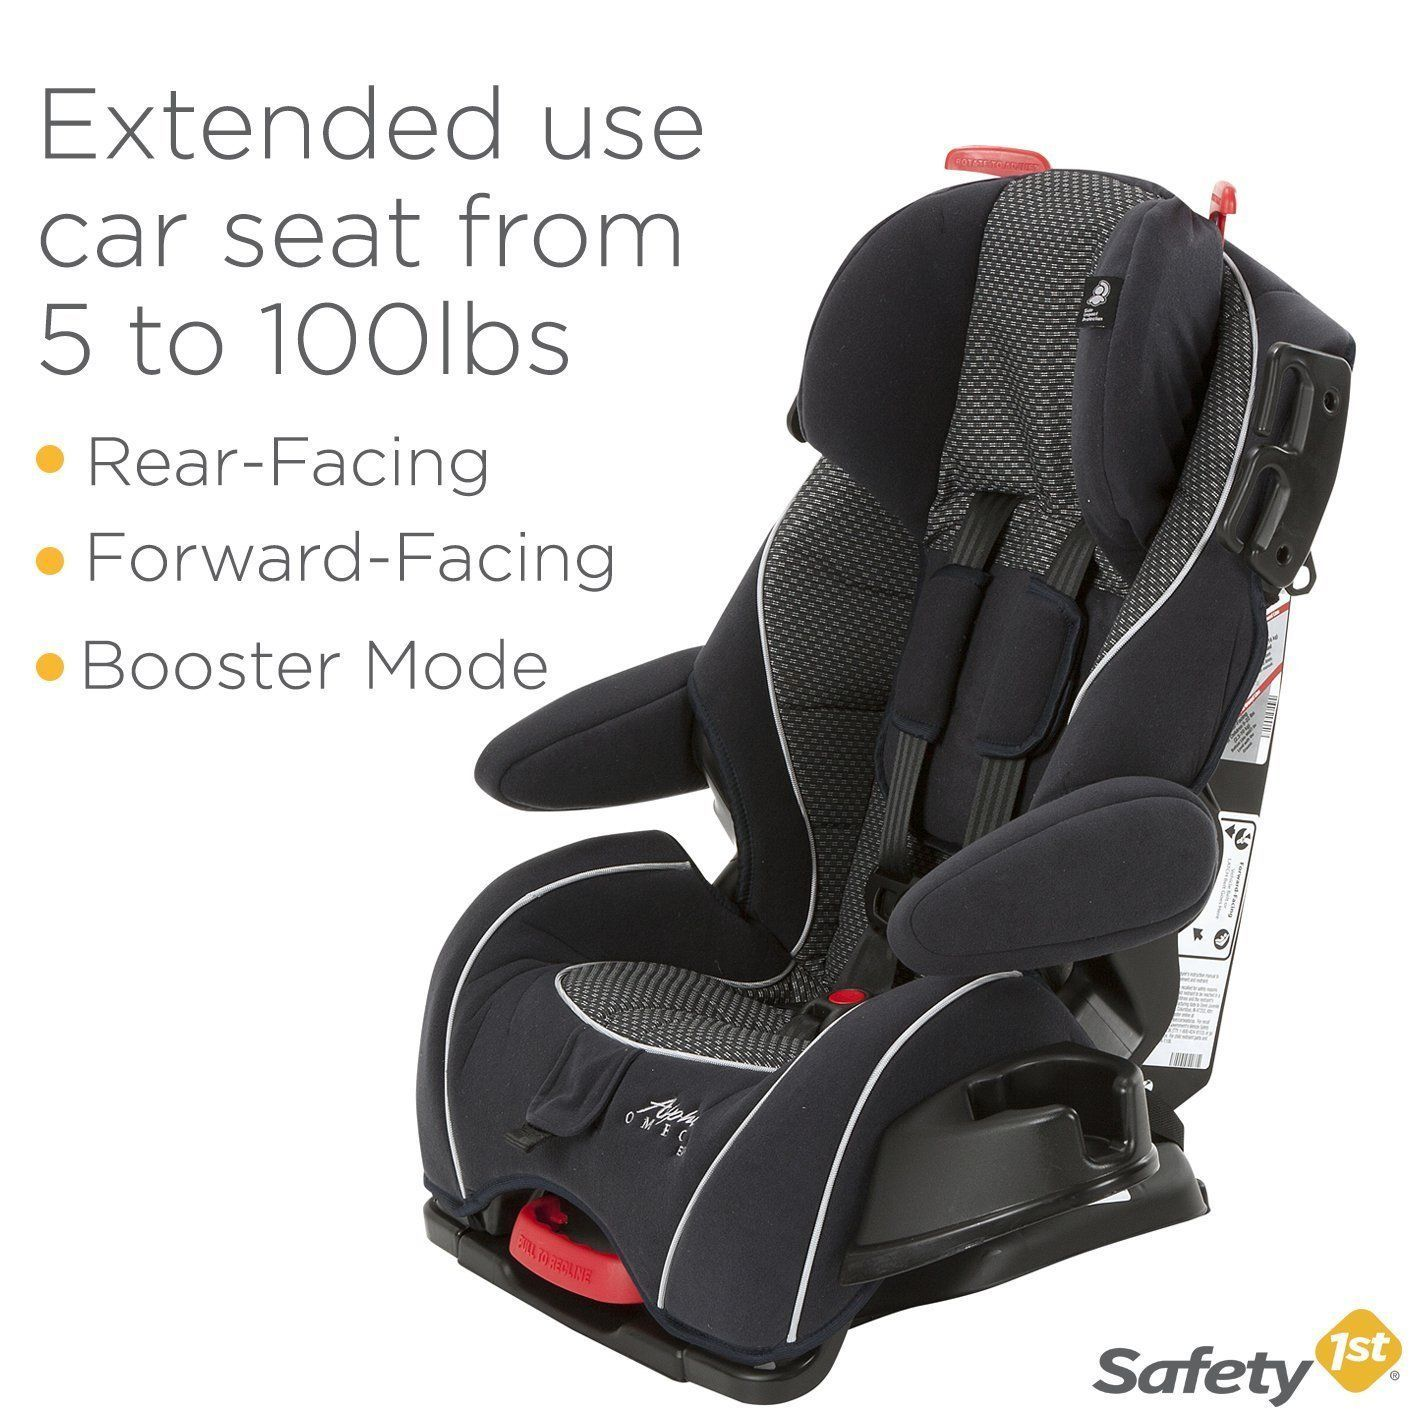 Safety 1st Alpha Omega Elite Convertible Car Seat, FREE